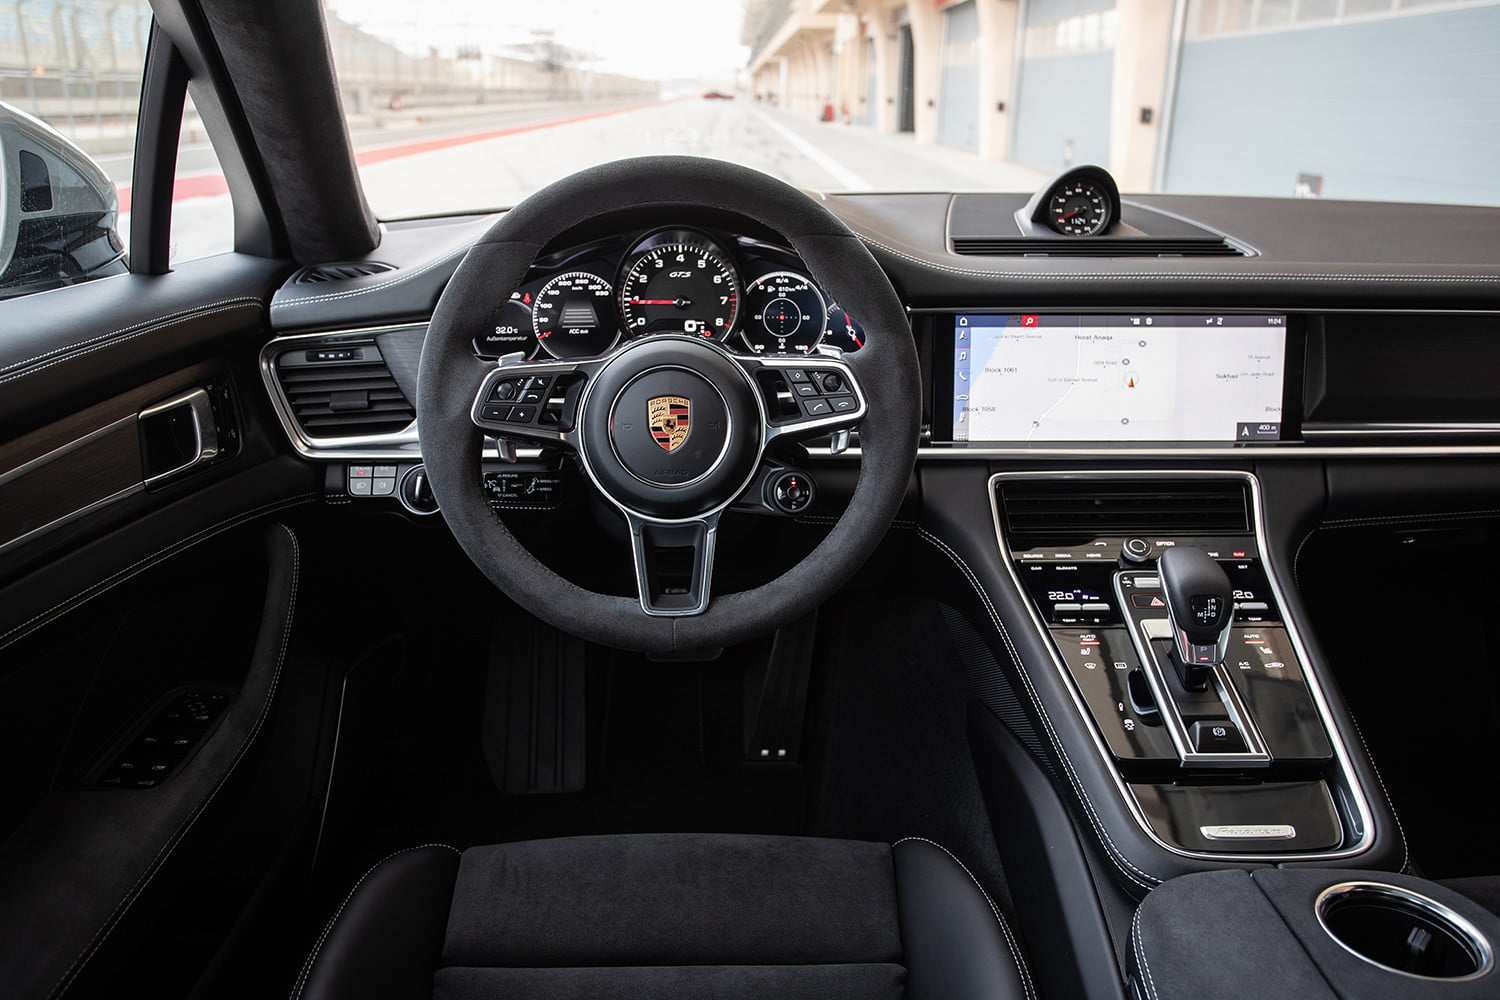 64 The Best 2019 Porsche Panamera Review And Release Date